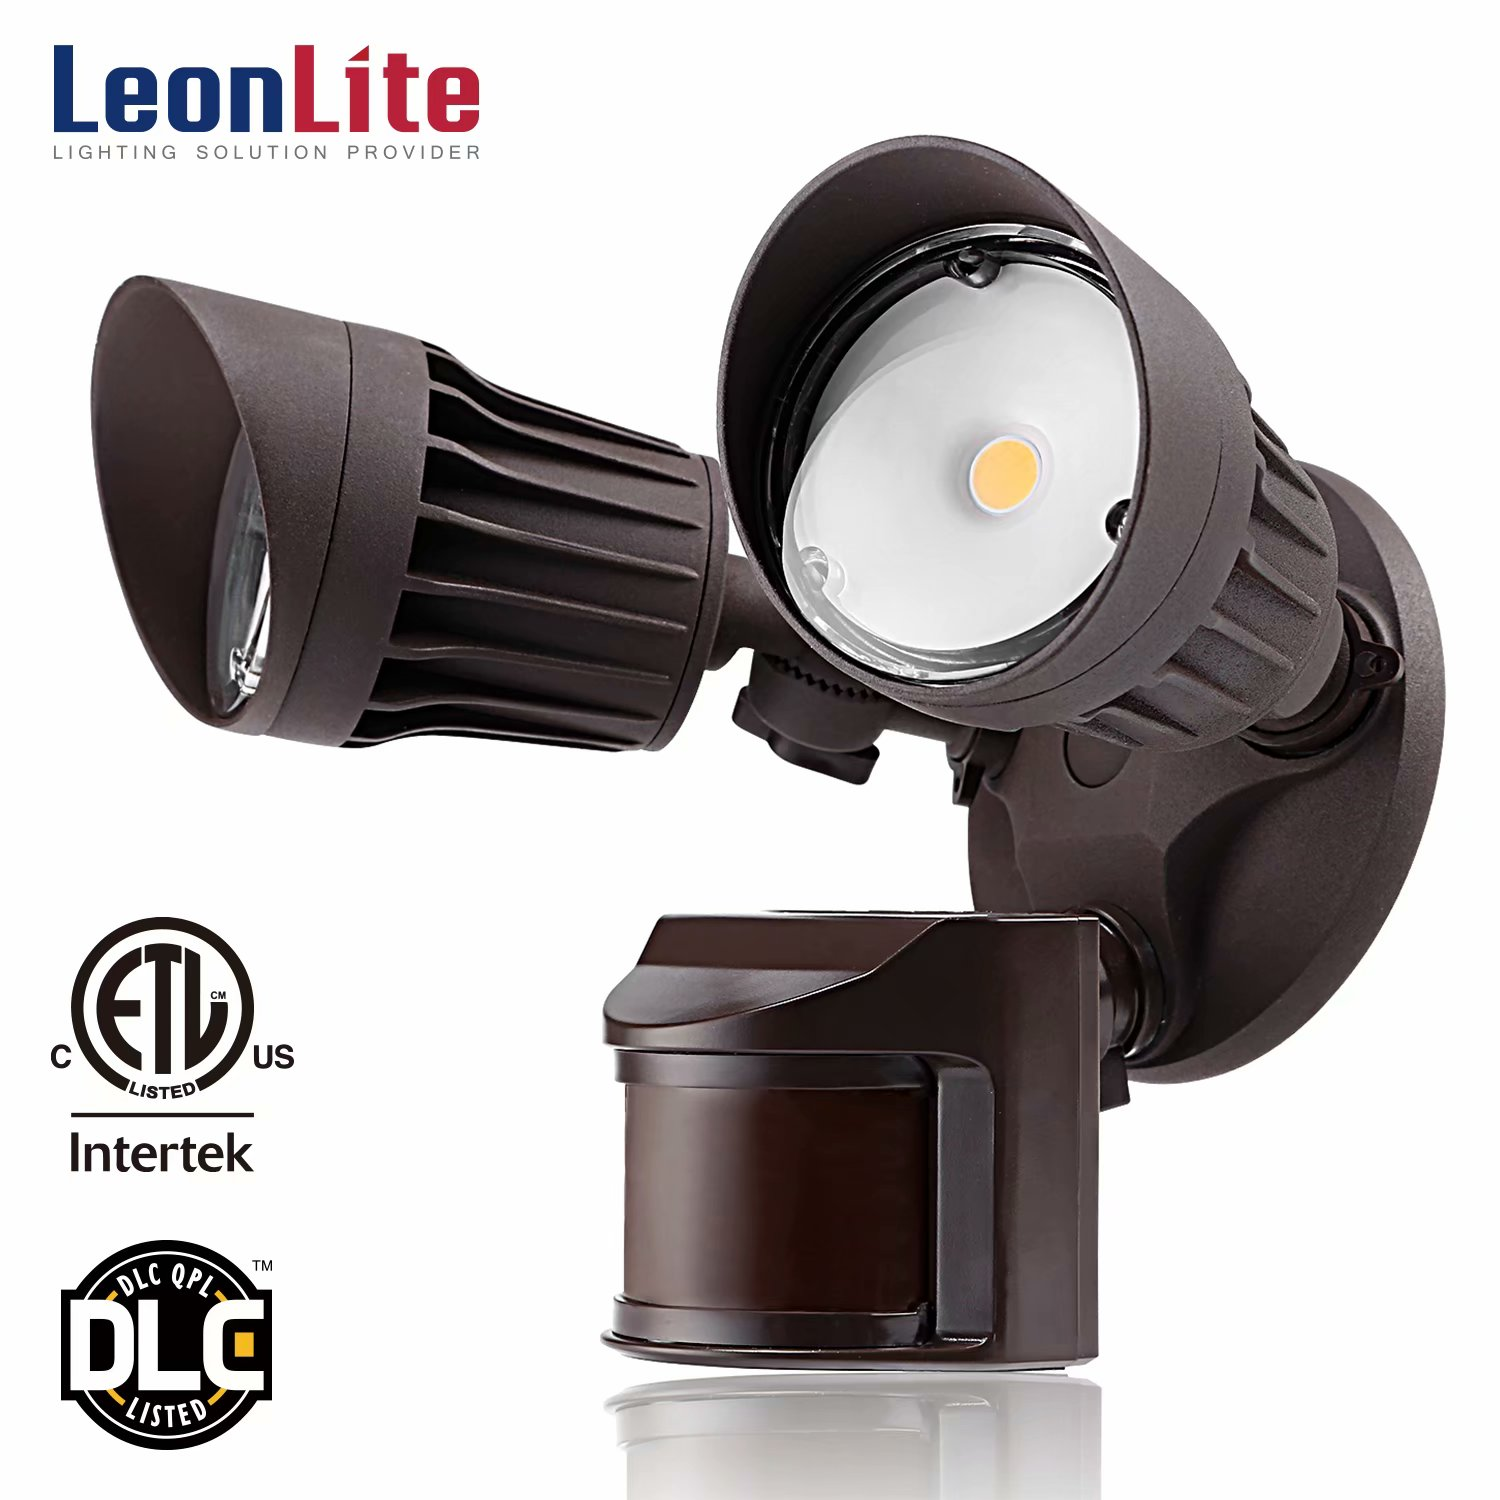 Leonlite 20w Dual Head Motion Activated Led Outdoor Security Light Have Replaced An Outside Pir Twin Lights For Patio Yard Photocell Included 3 Lighting Modes 5000k Daylight Bronze Walmart